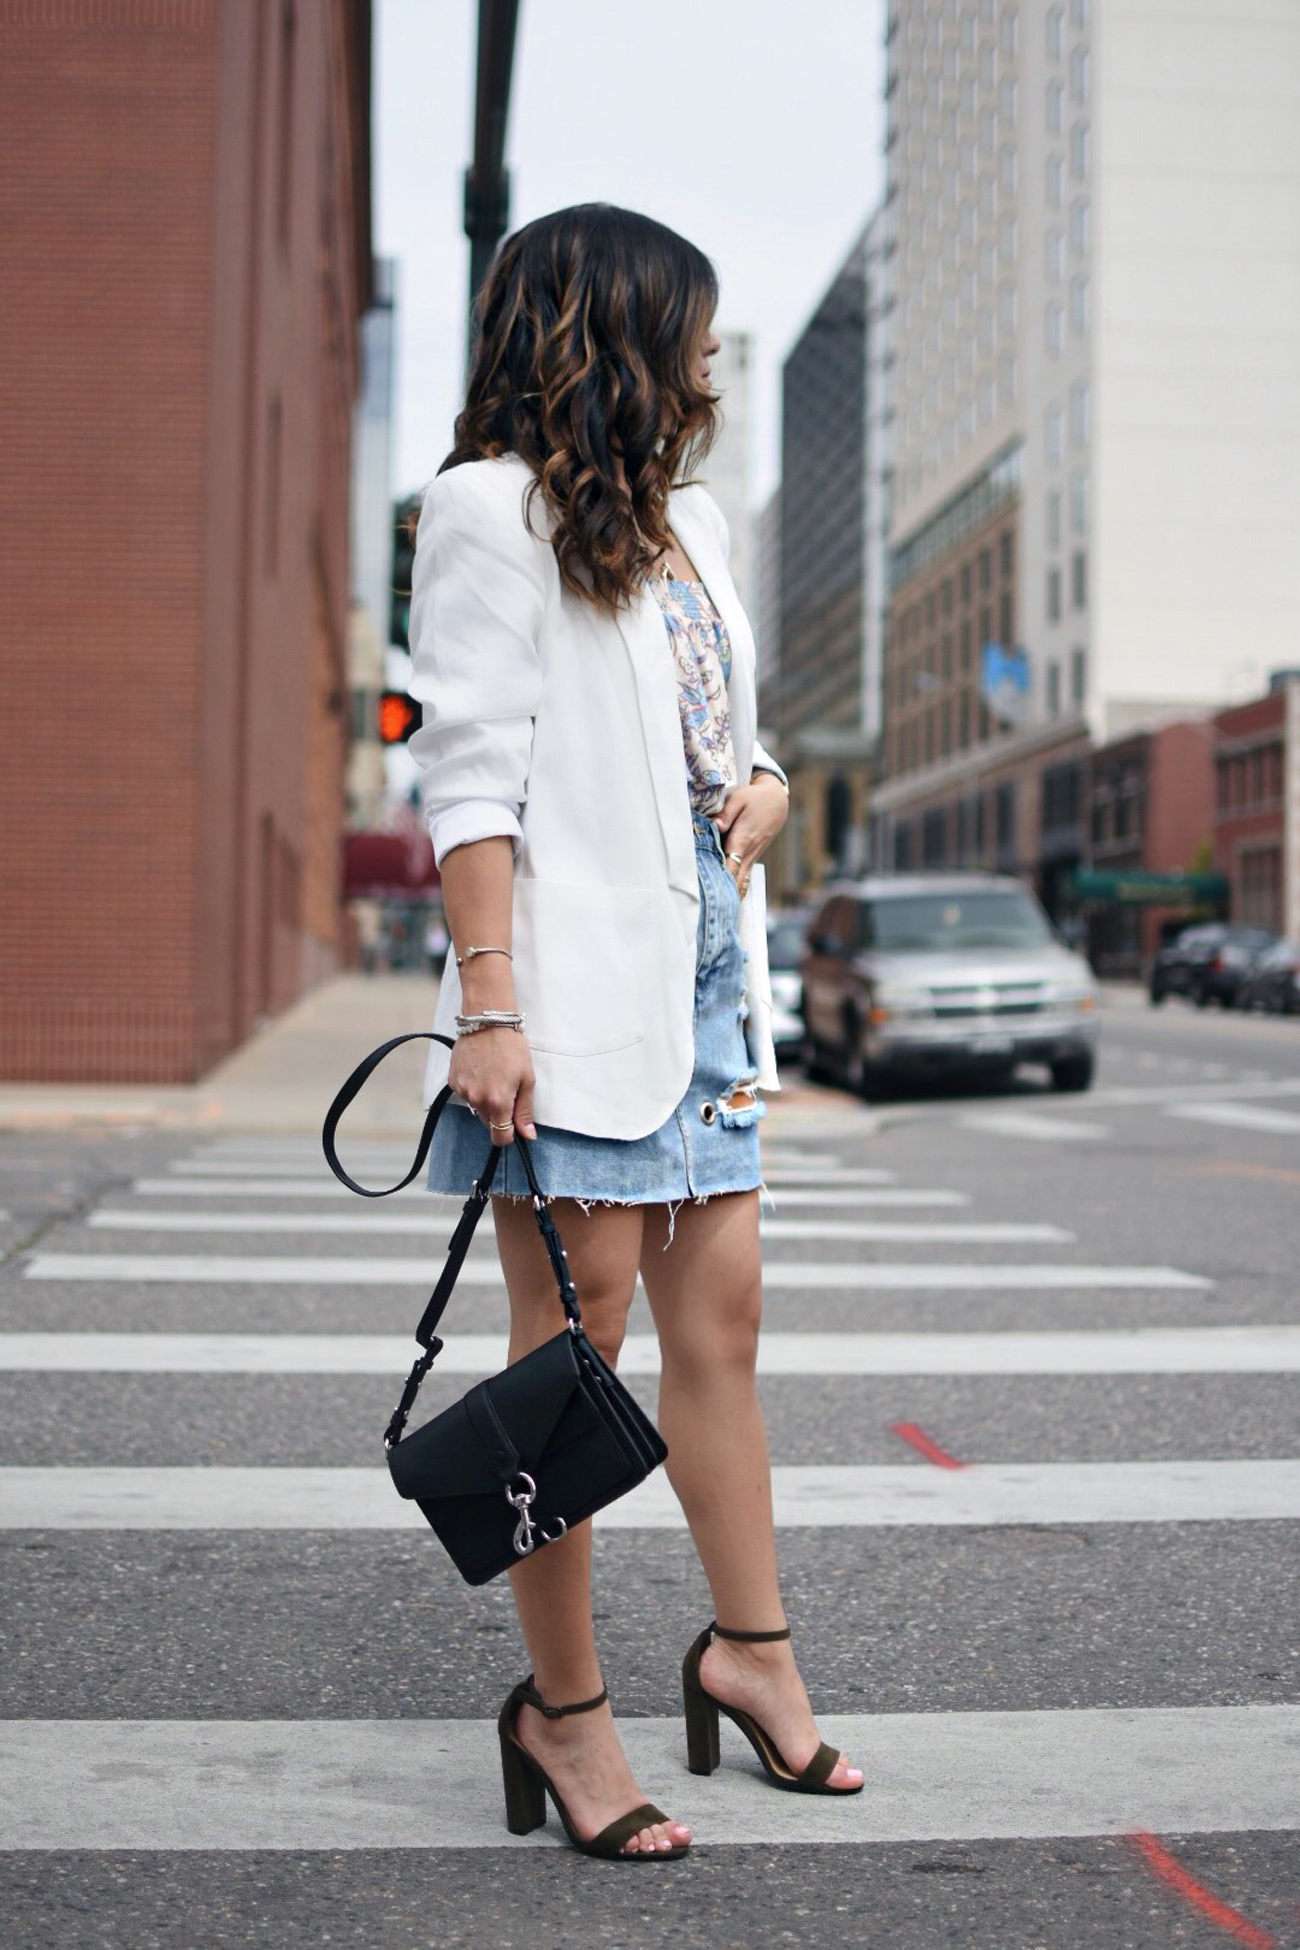 Carolina Hellal of Chic Talk wearing a Forever 21 denim mini skirt, Patterns and pops floral top, Thacker white blazer and Rebecca Minkoff black bag.